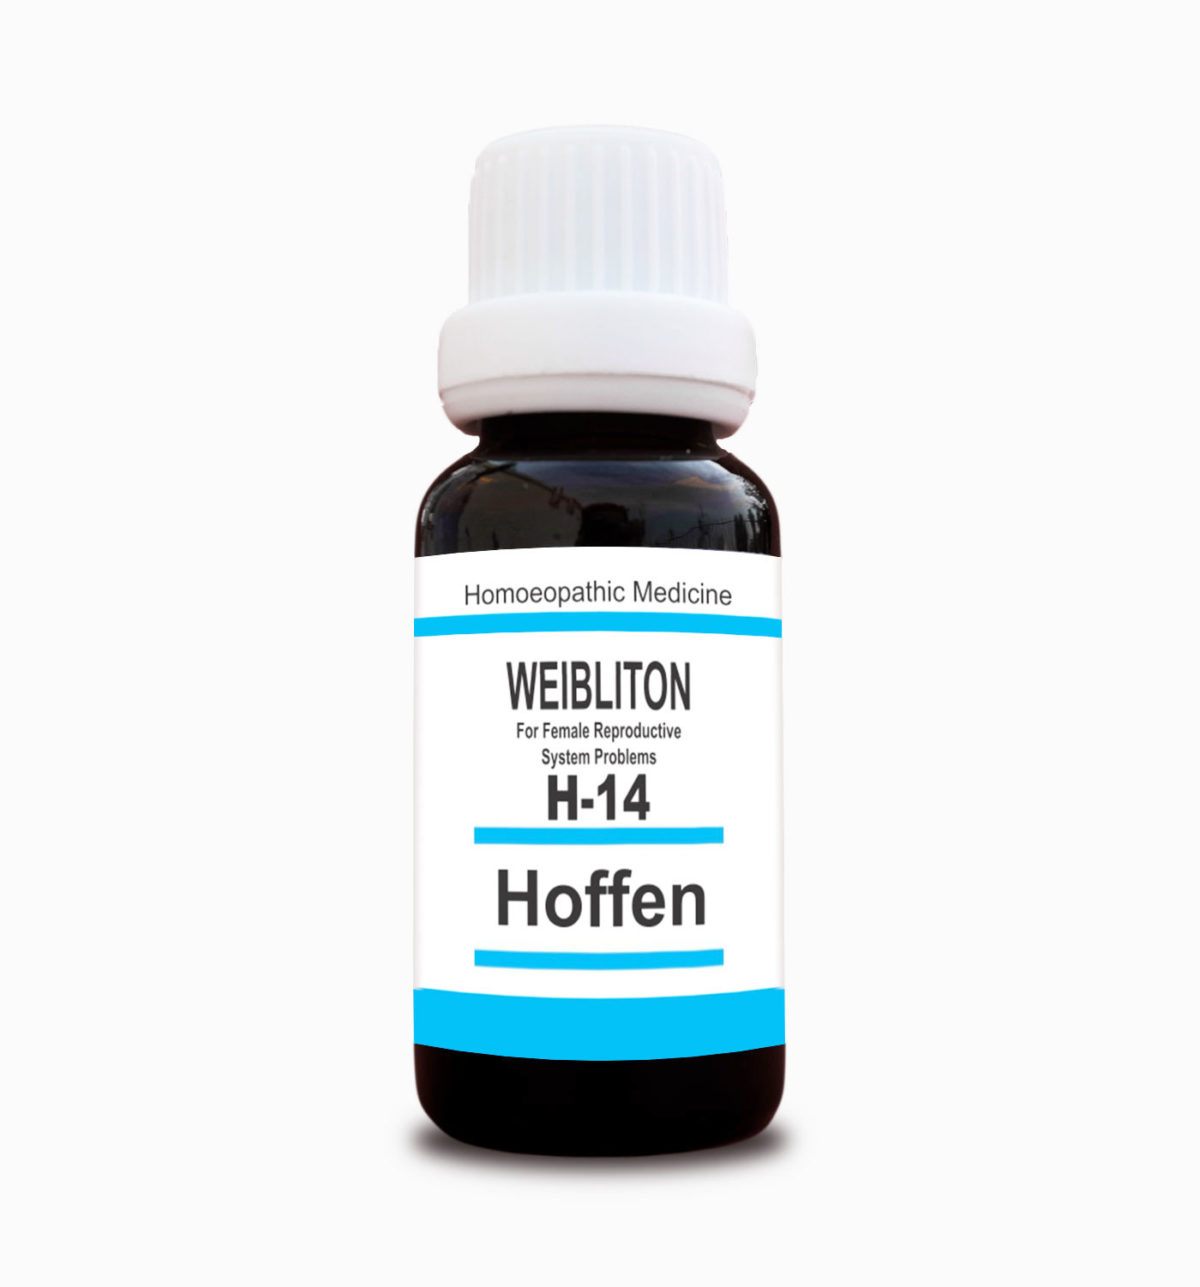 Homoeopathic preparation helpful for permote female reproductive system, relives gynaecological disorders